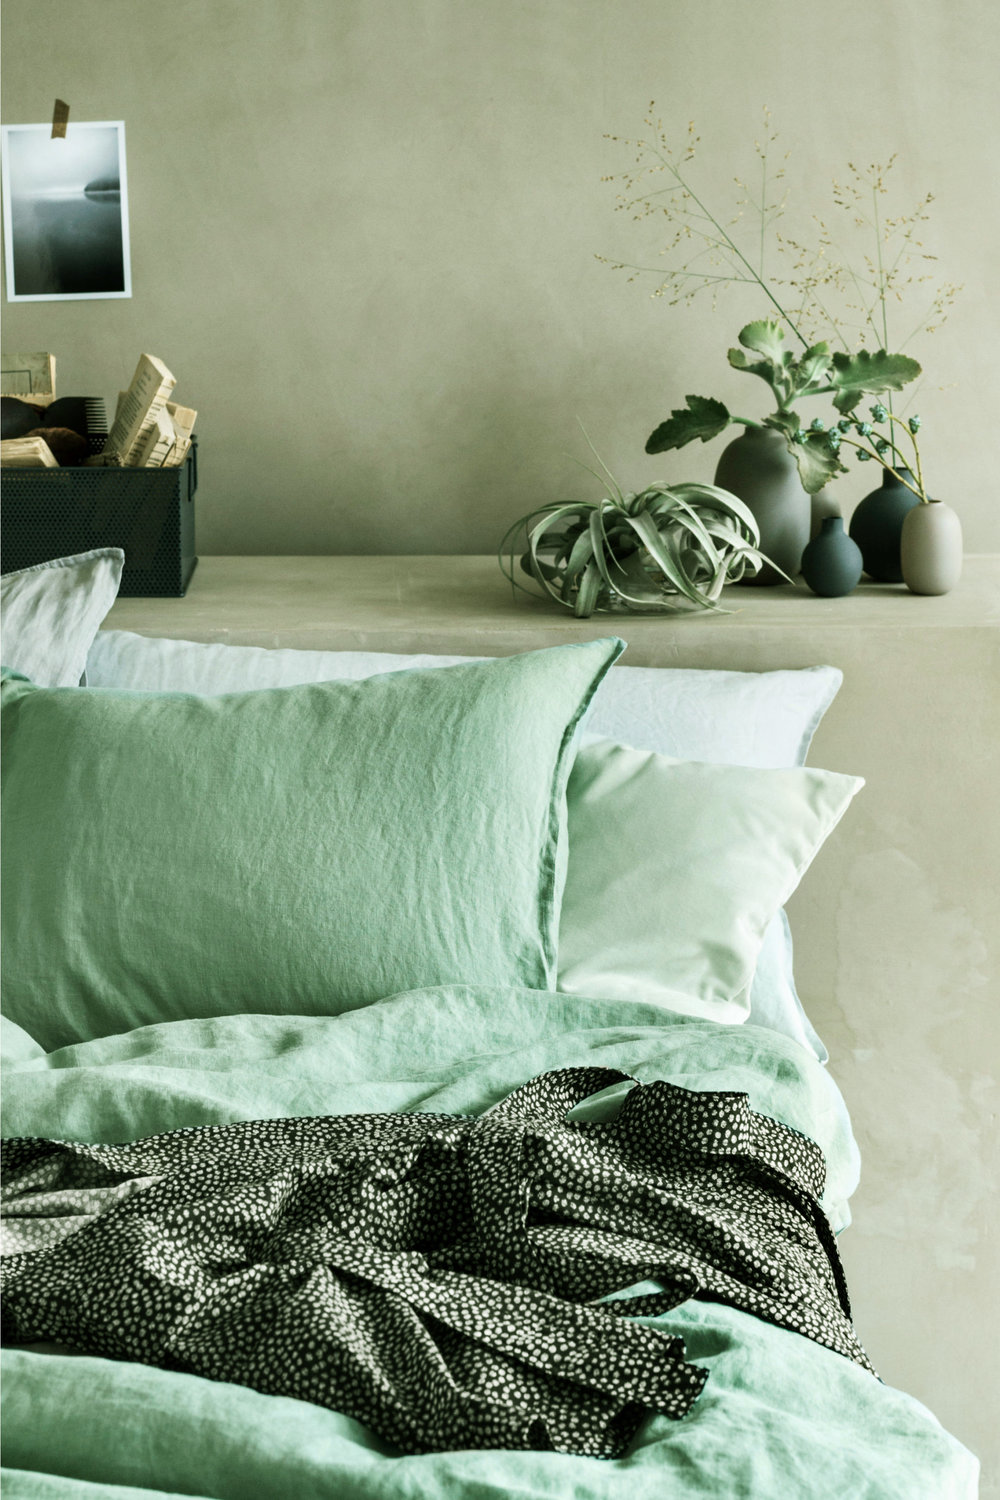 Bedroom bliss - For a subtle hint of mint that also embraces the trend for natural materials and wellness, opt for this beautiful washed linen duvet cover set from H&M Home. The pared-back shade of Dusky Green works perfectly with the relaxed texture of the material. Simply dreamy!